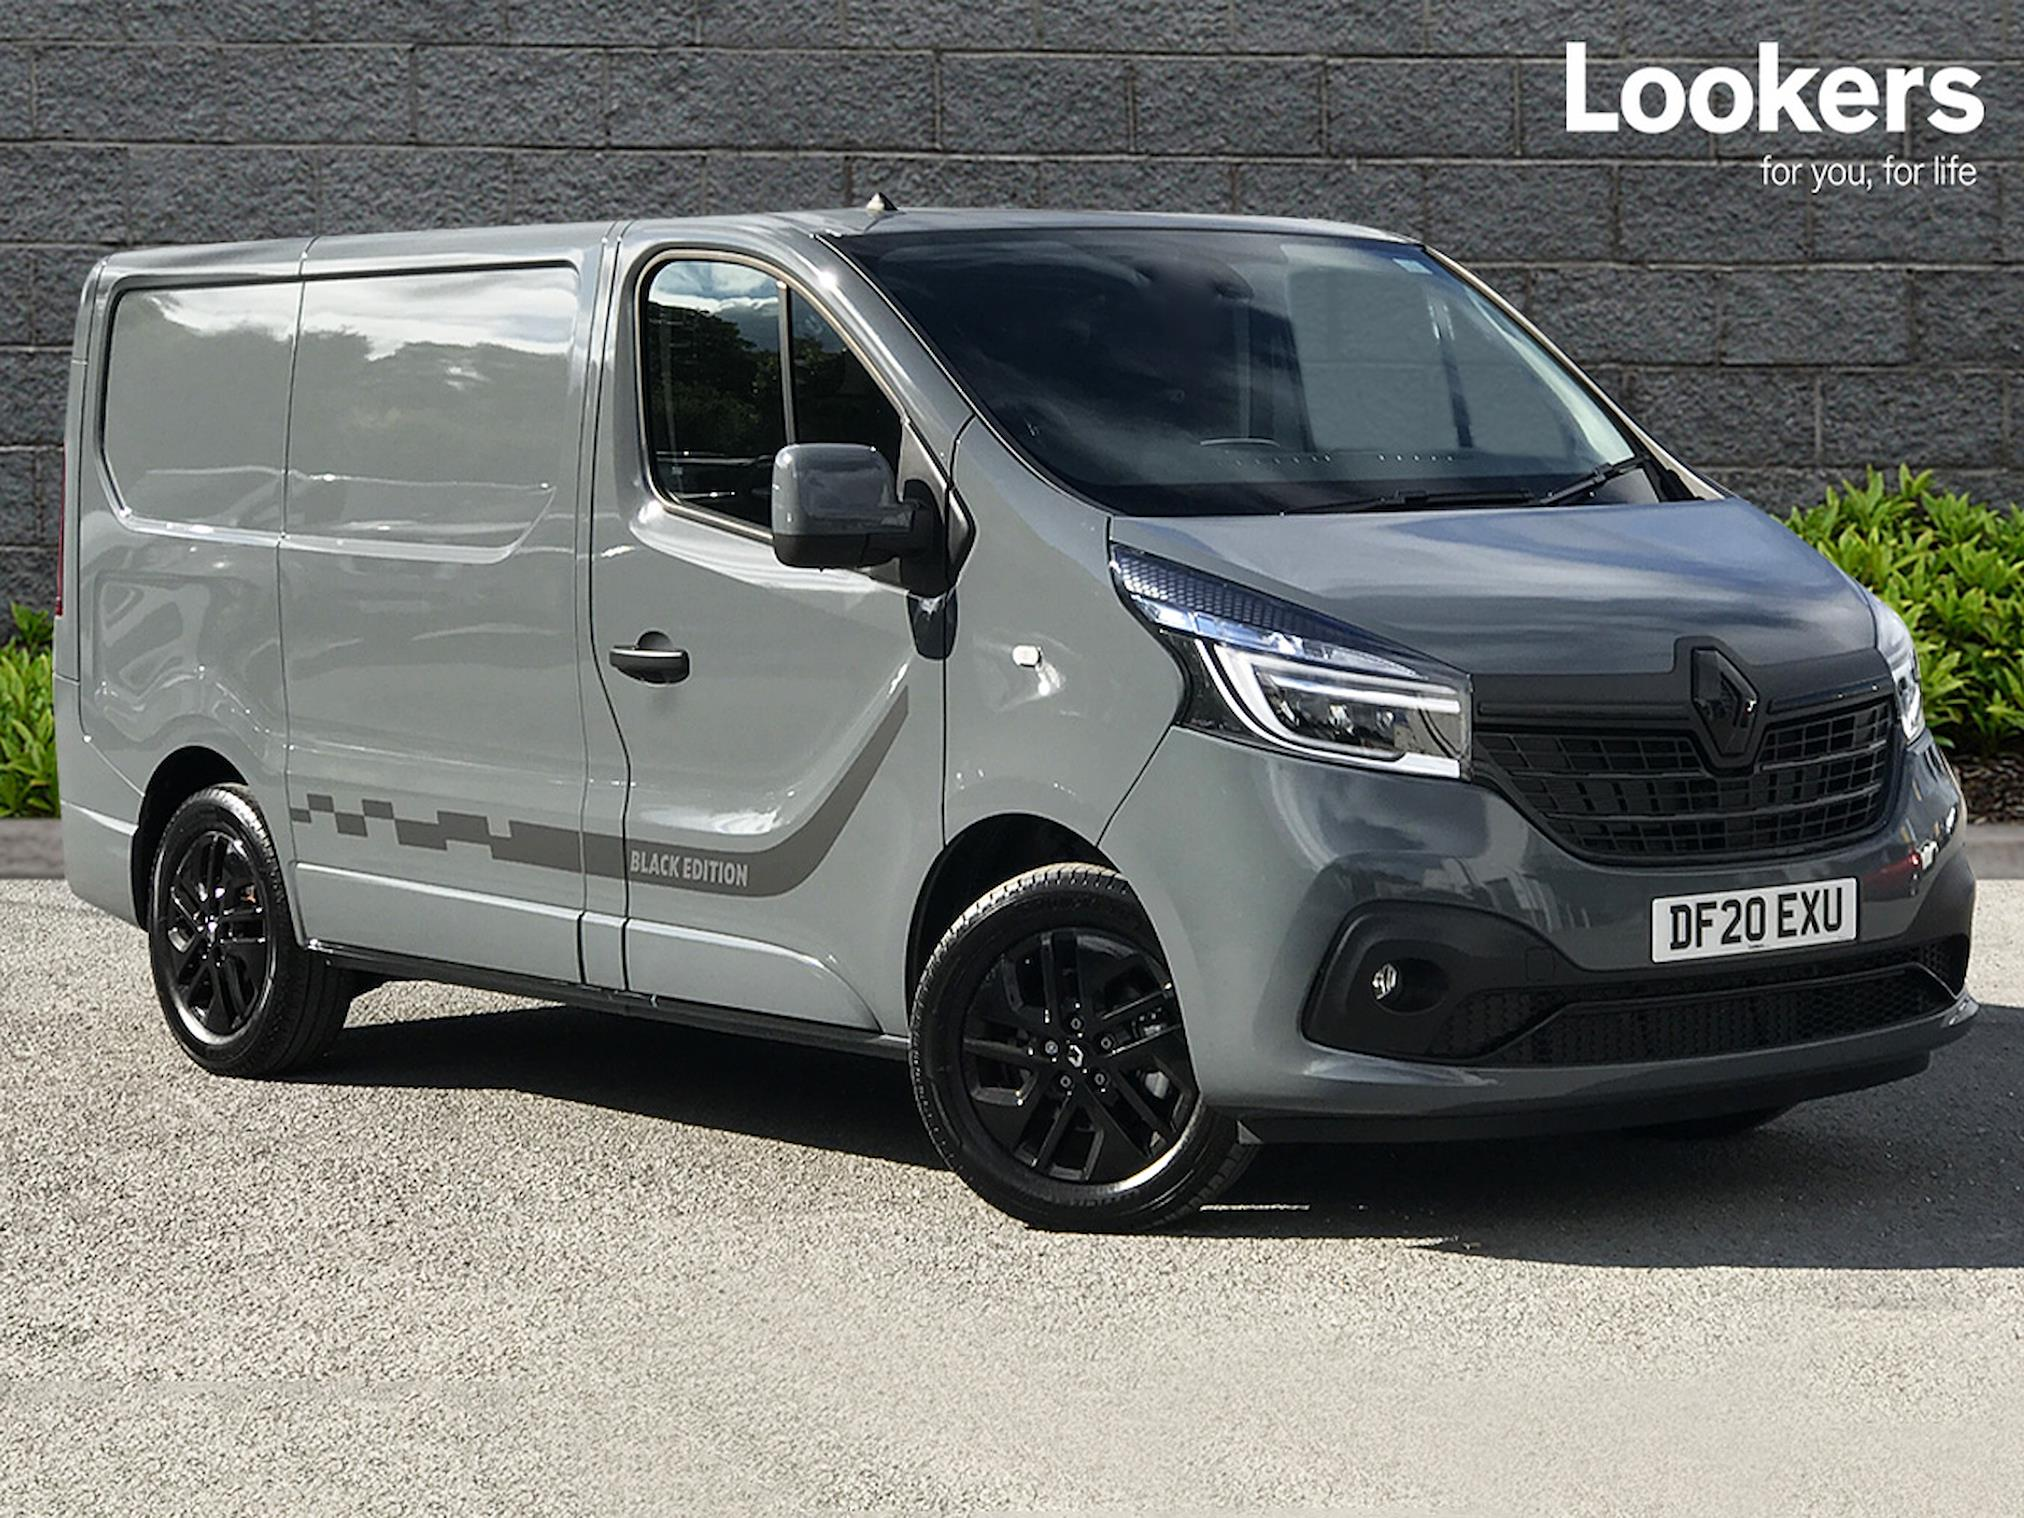 Nearly New Trafic Renault Sl28 Energy Dci 145 Black Edition Van 2020 Lookers